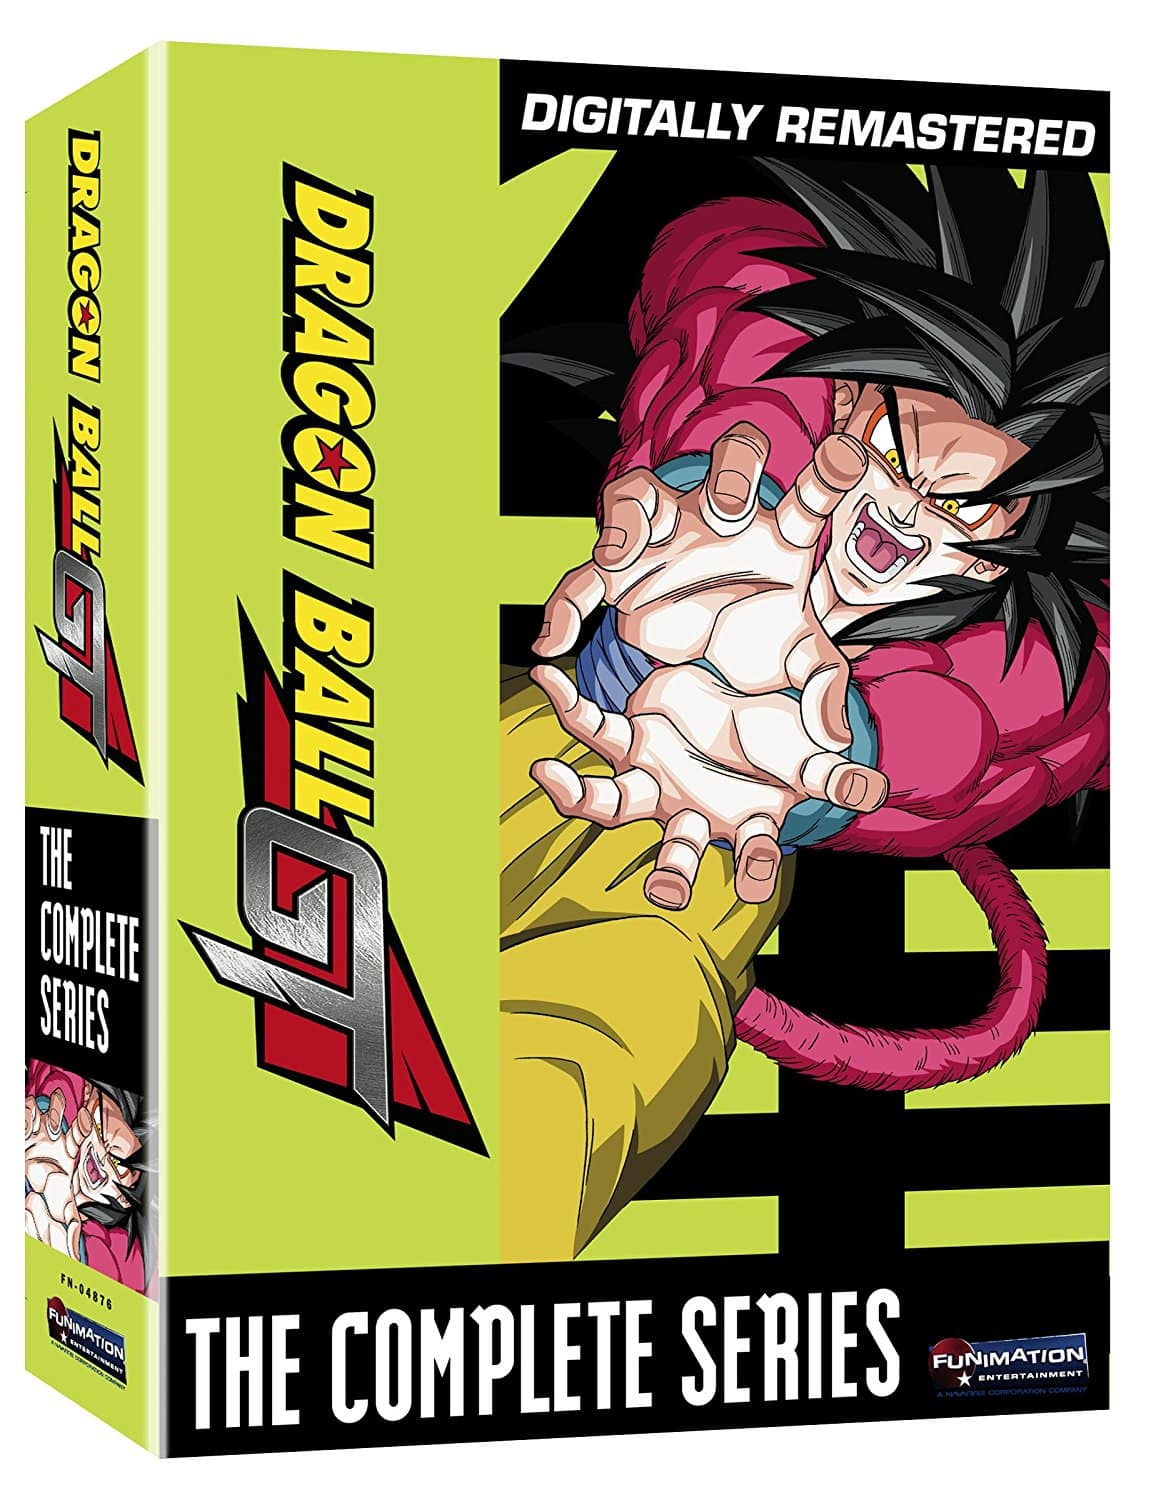 Dragon Ball GT: The Complete Series Box Set (10-Disc DVD) $22.96 + Free Shipping for Prime Members via Amazon